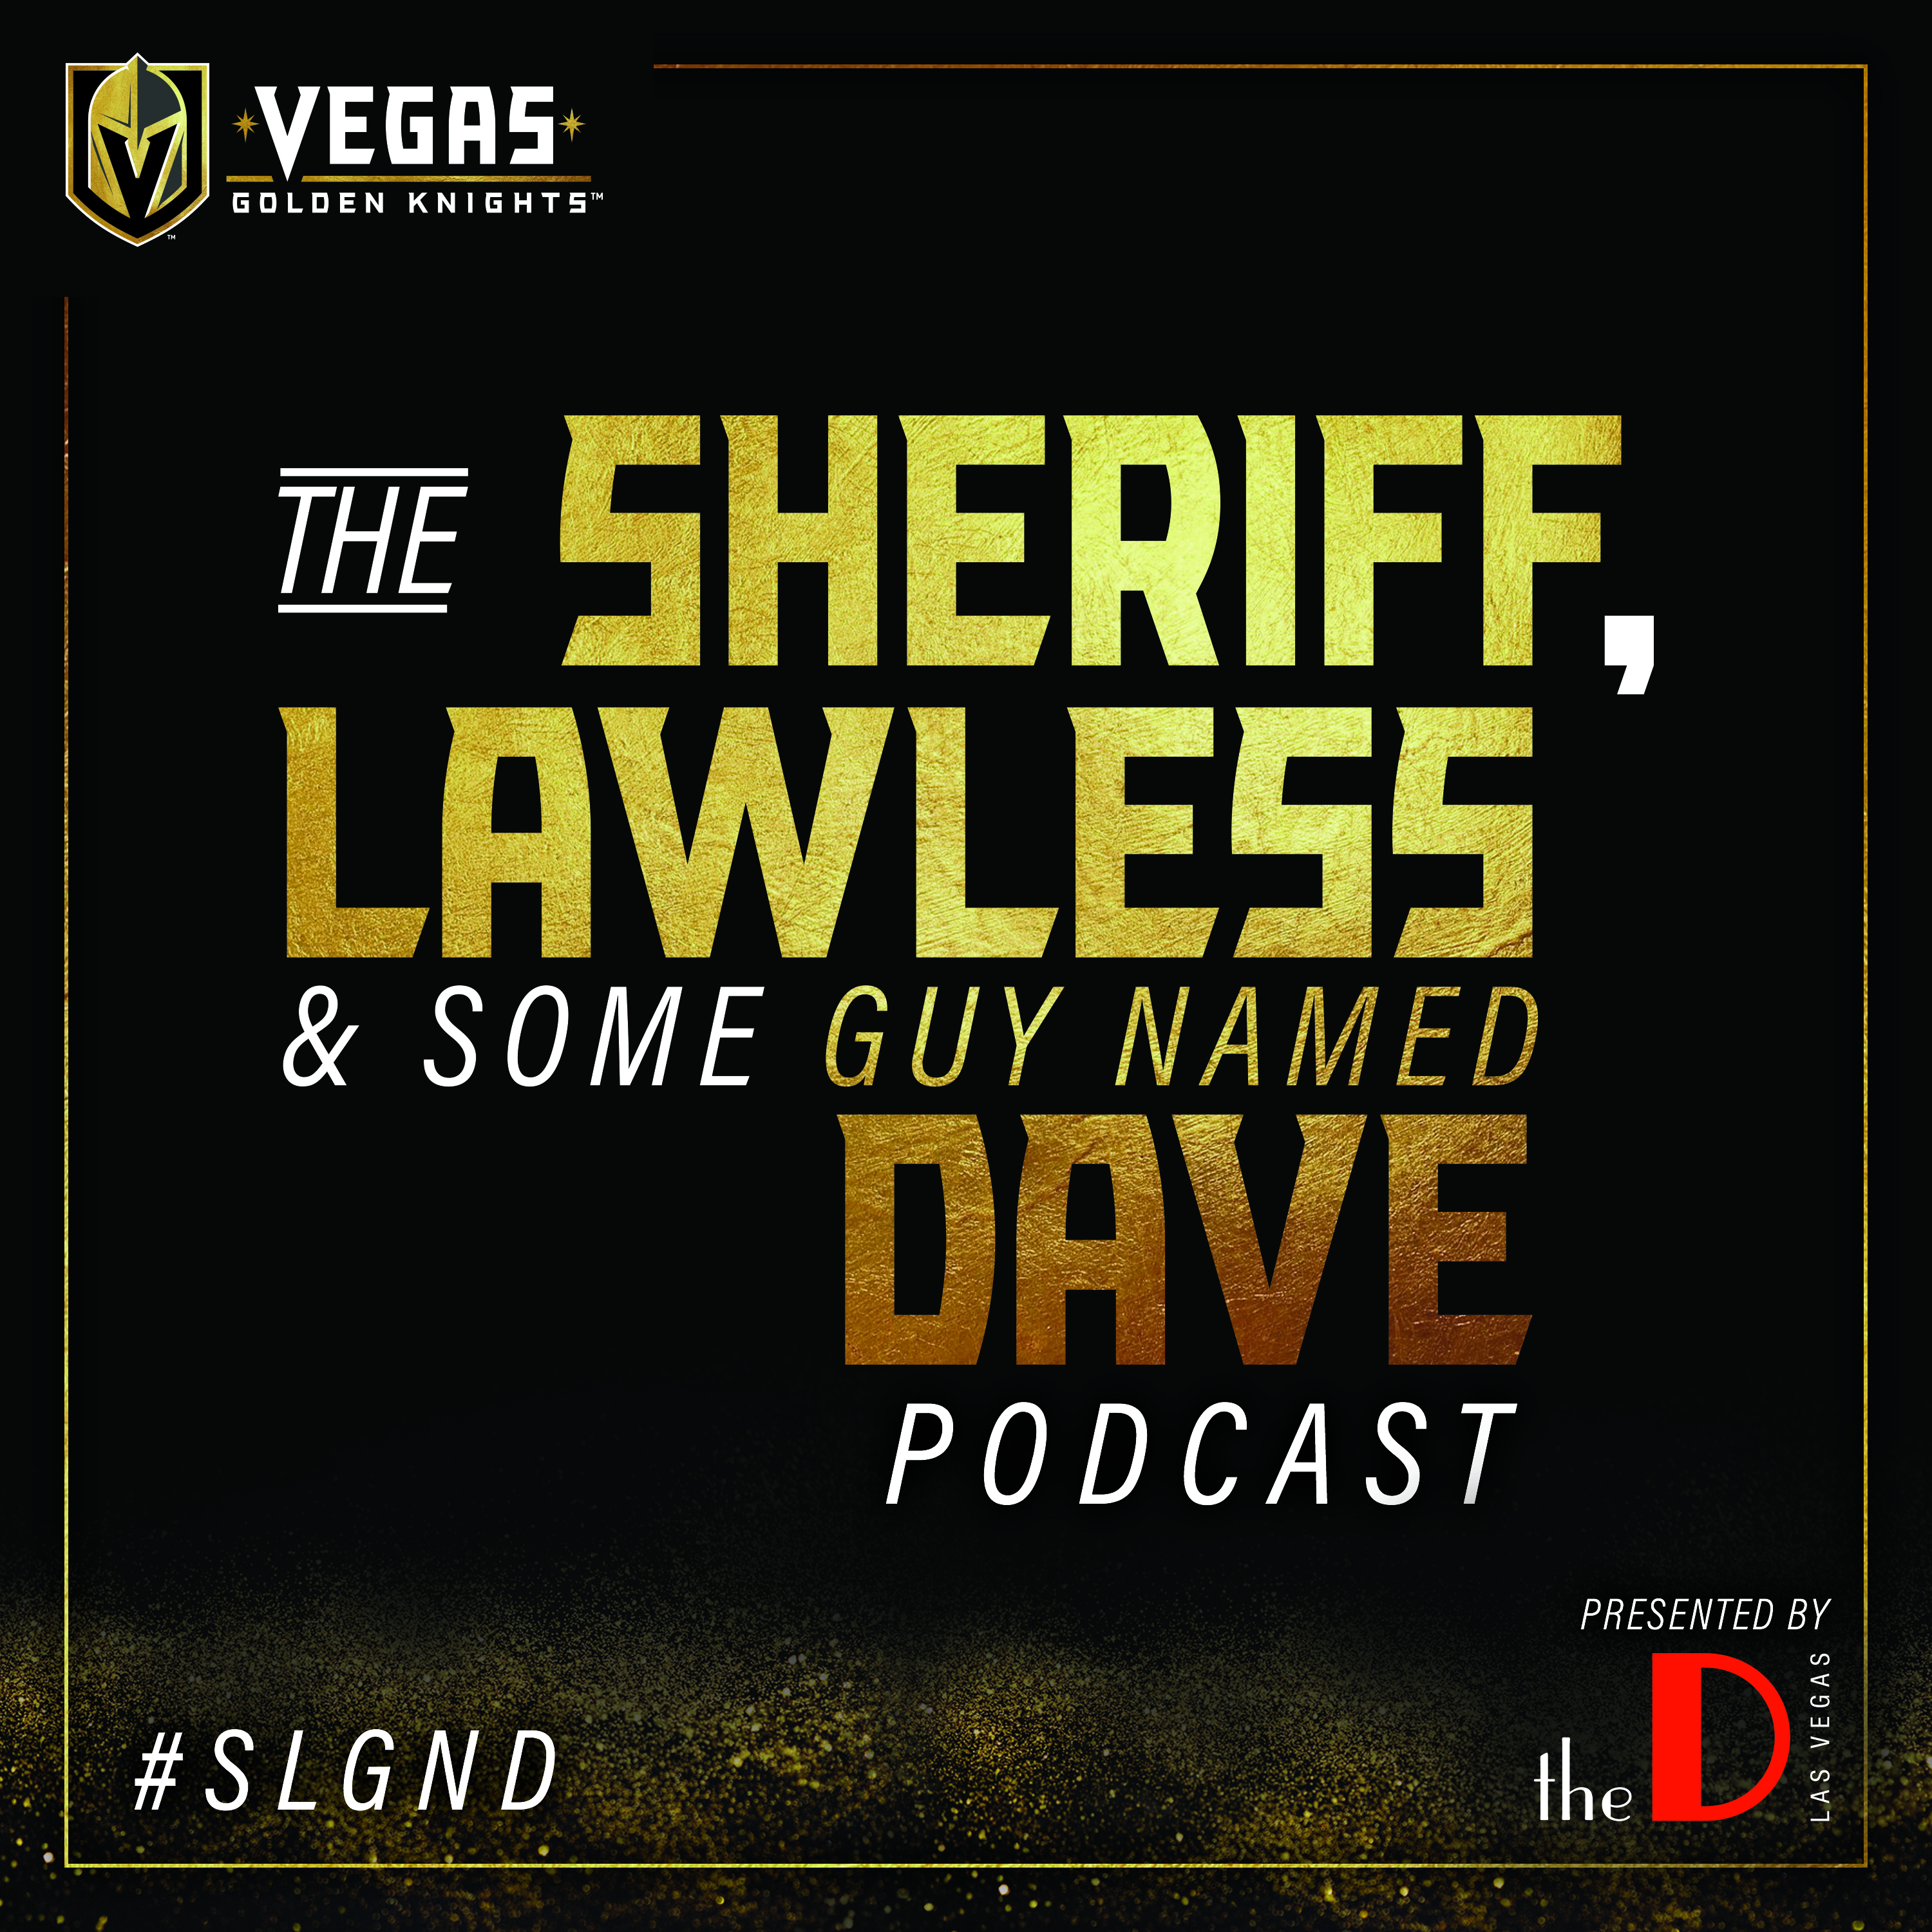 2019 Stanley Cup Playoffs Begin - Sheriff, Lawless and Some